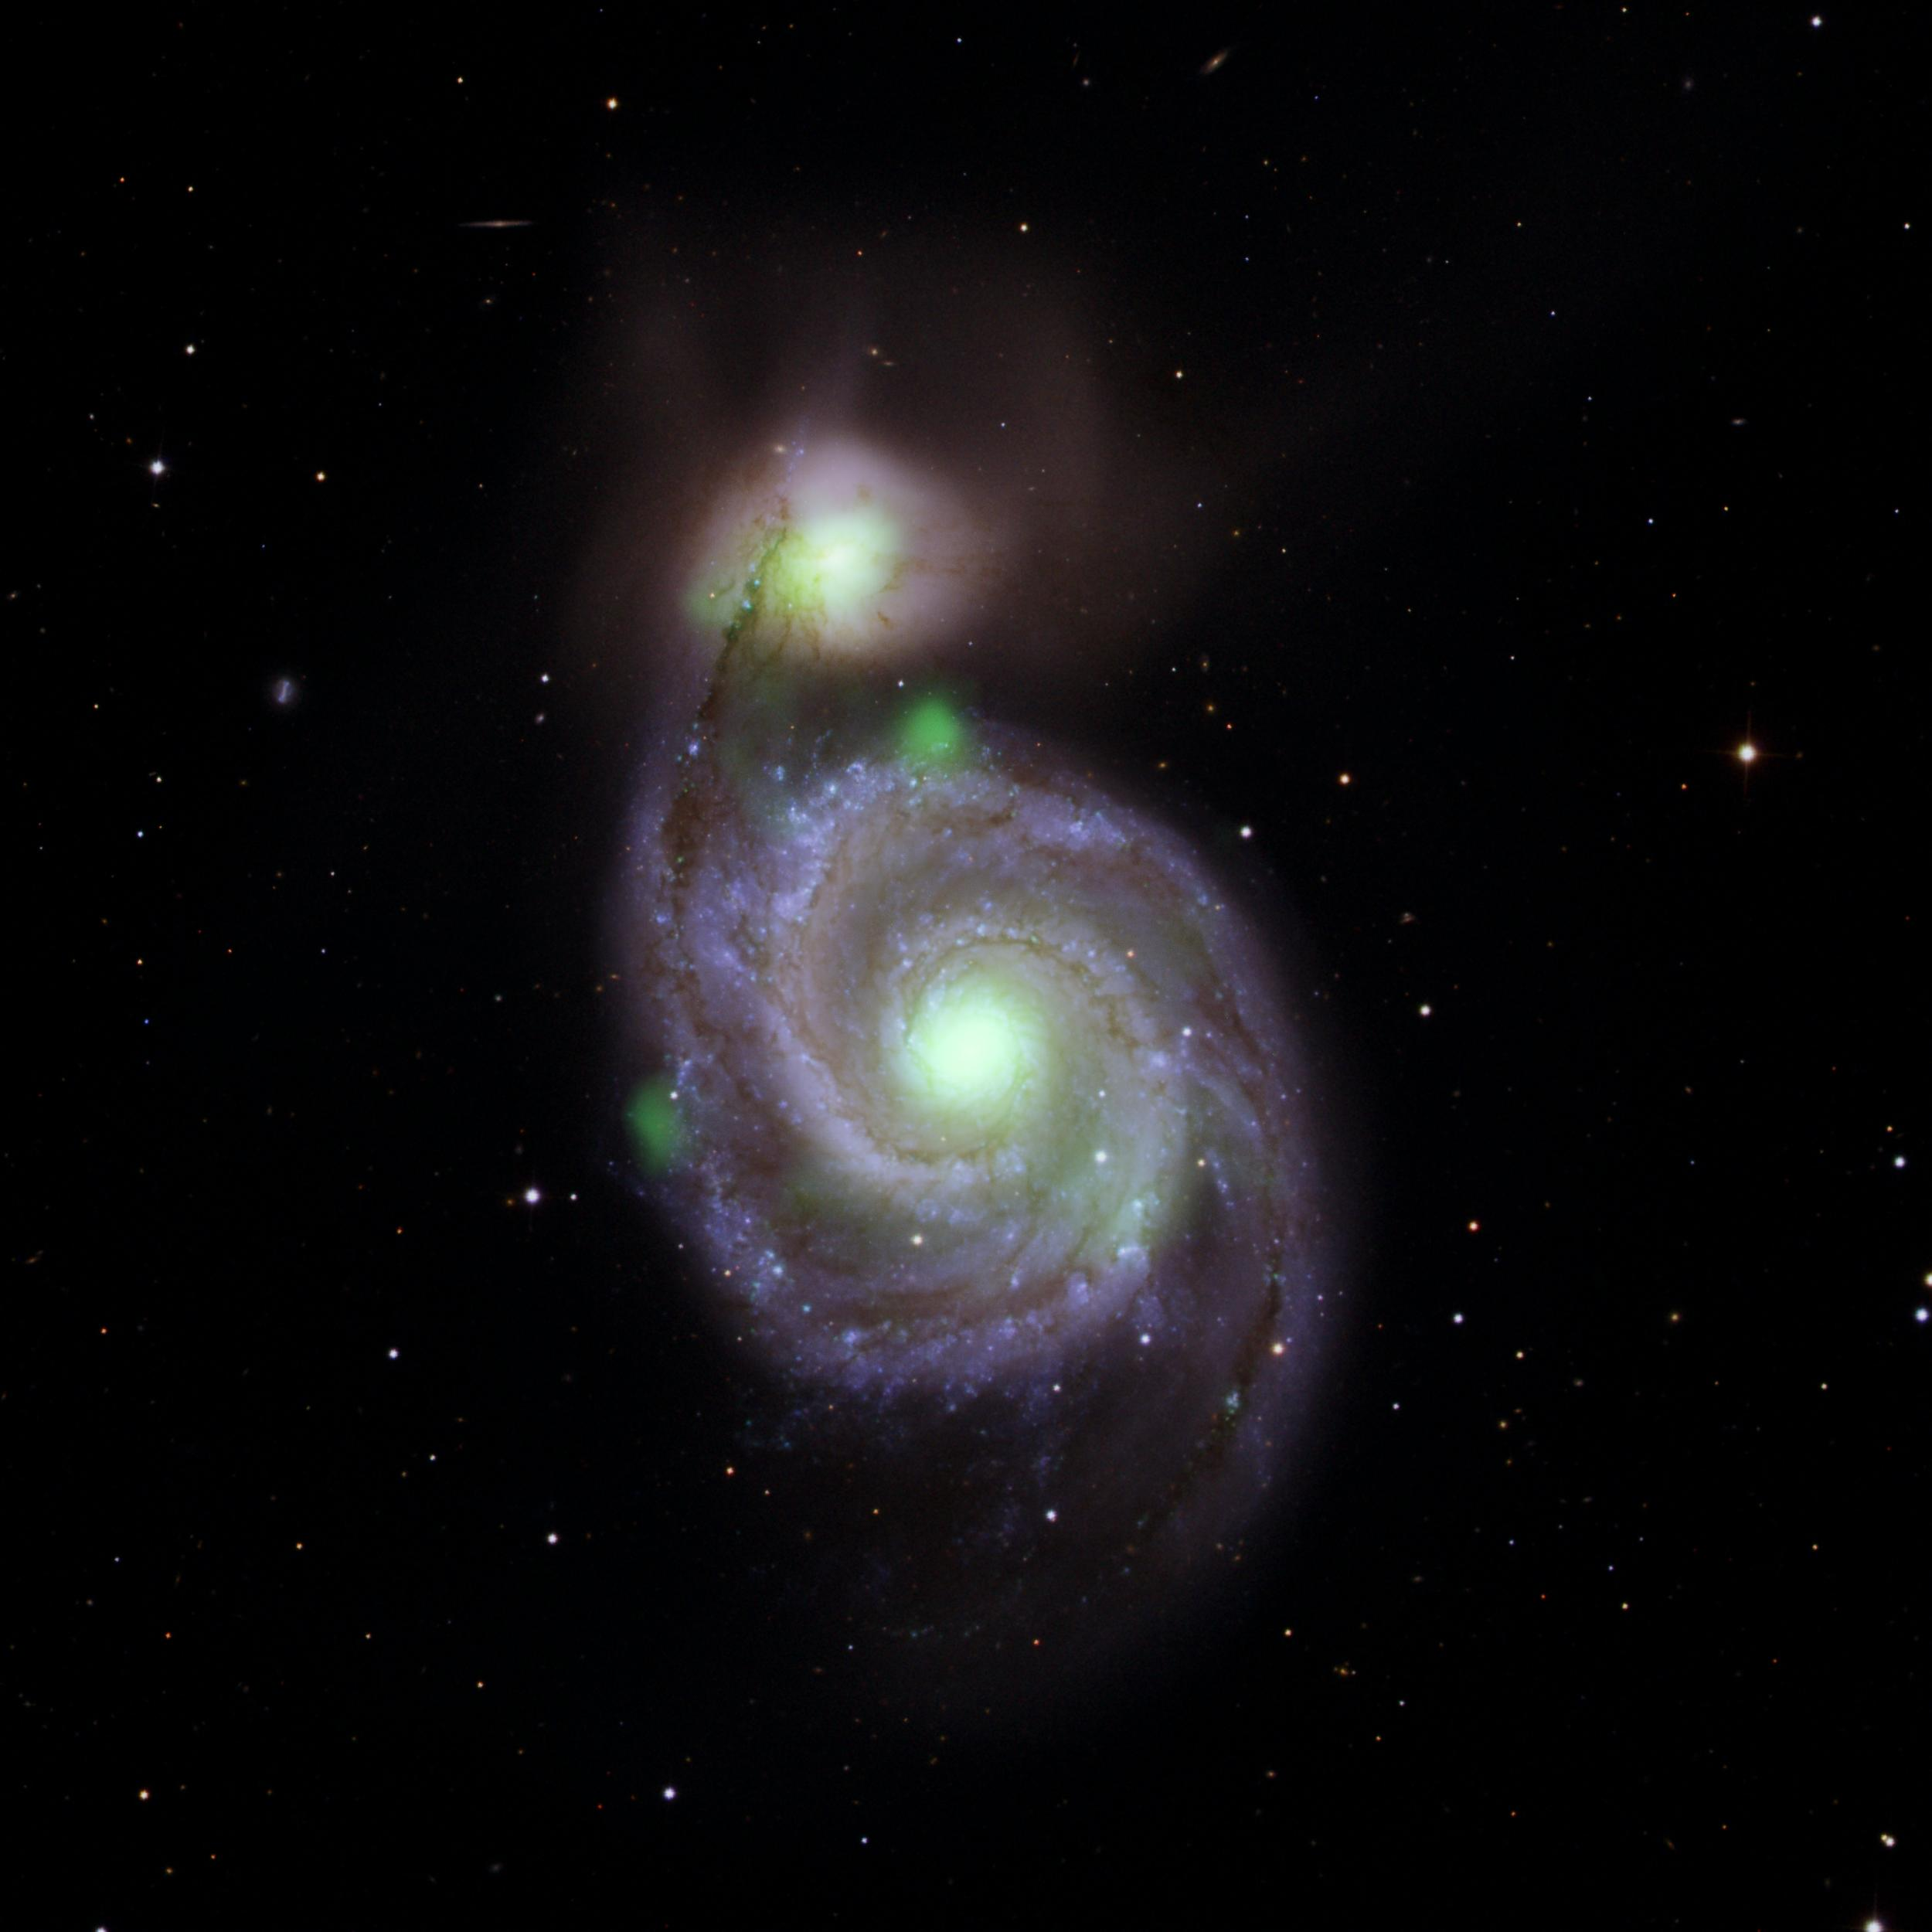 Sources of high-energy X-ray light captured by NASAs NuSTAR mission are overlaid on an image of the Whirlpool galaxy and its companion galaxy, M51b, taken by the Sloan Digital Sky Survey.